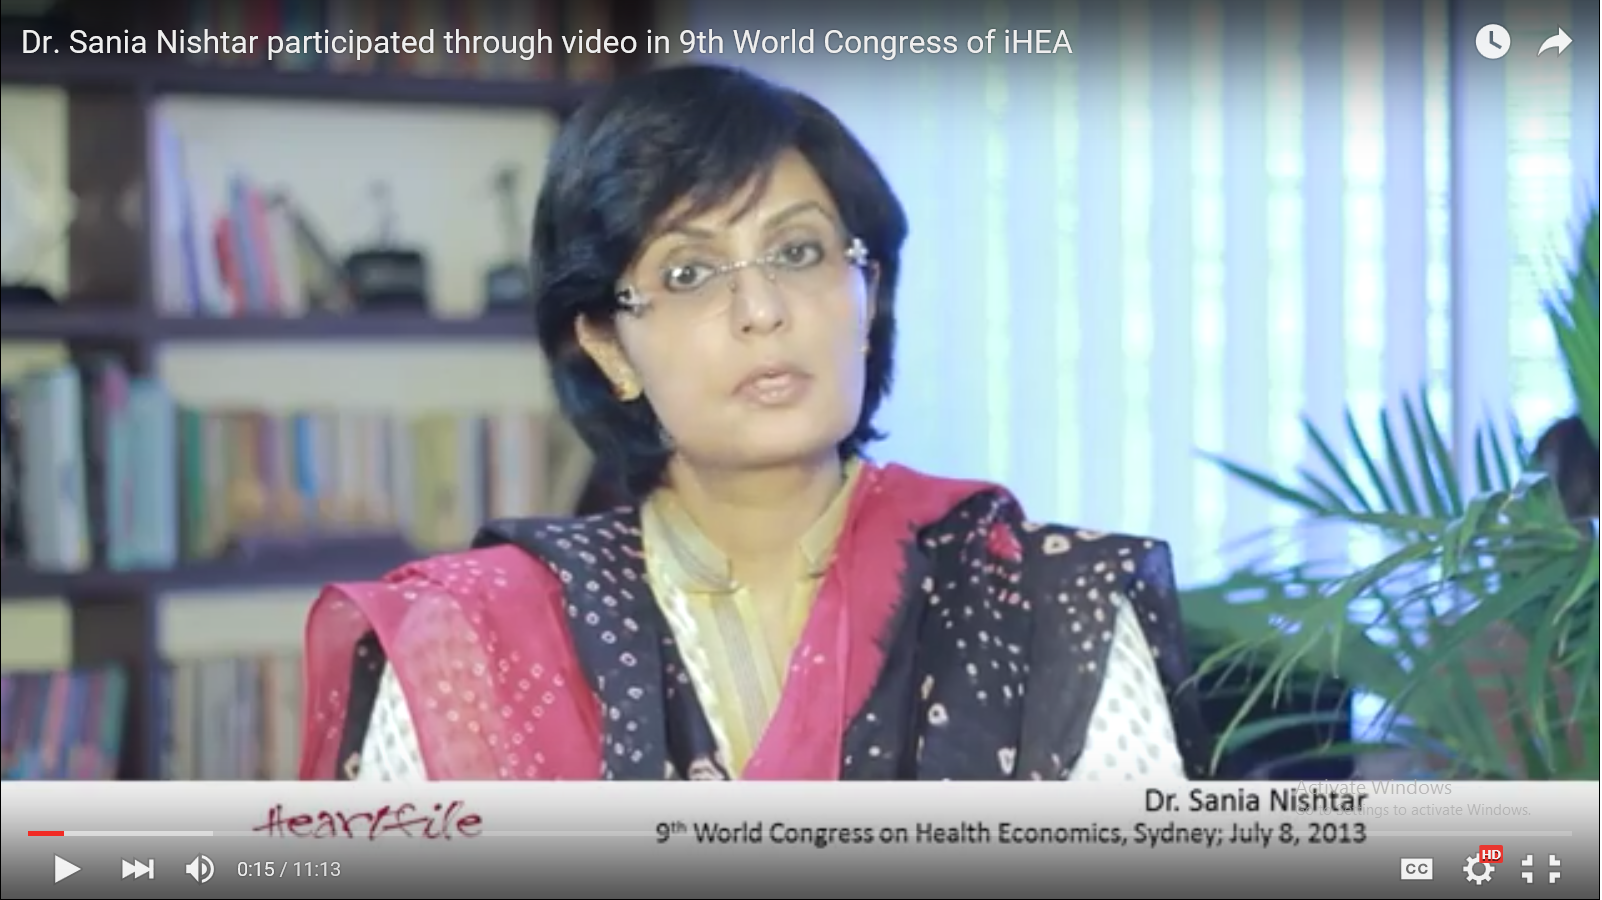 Sania Nishtar at the International Health Economics Conference, Australia